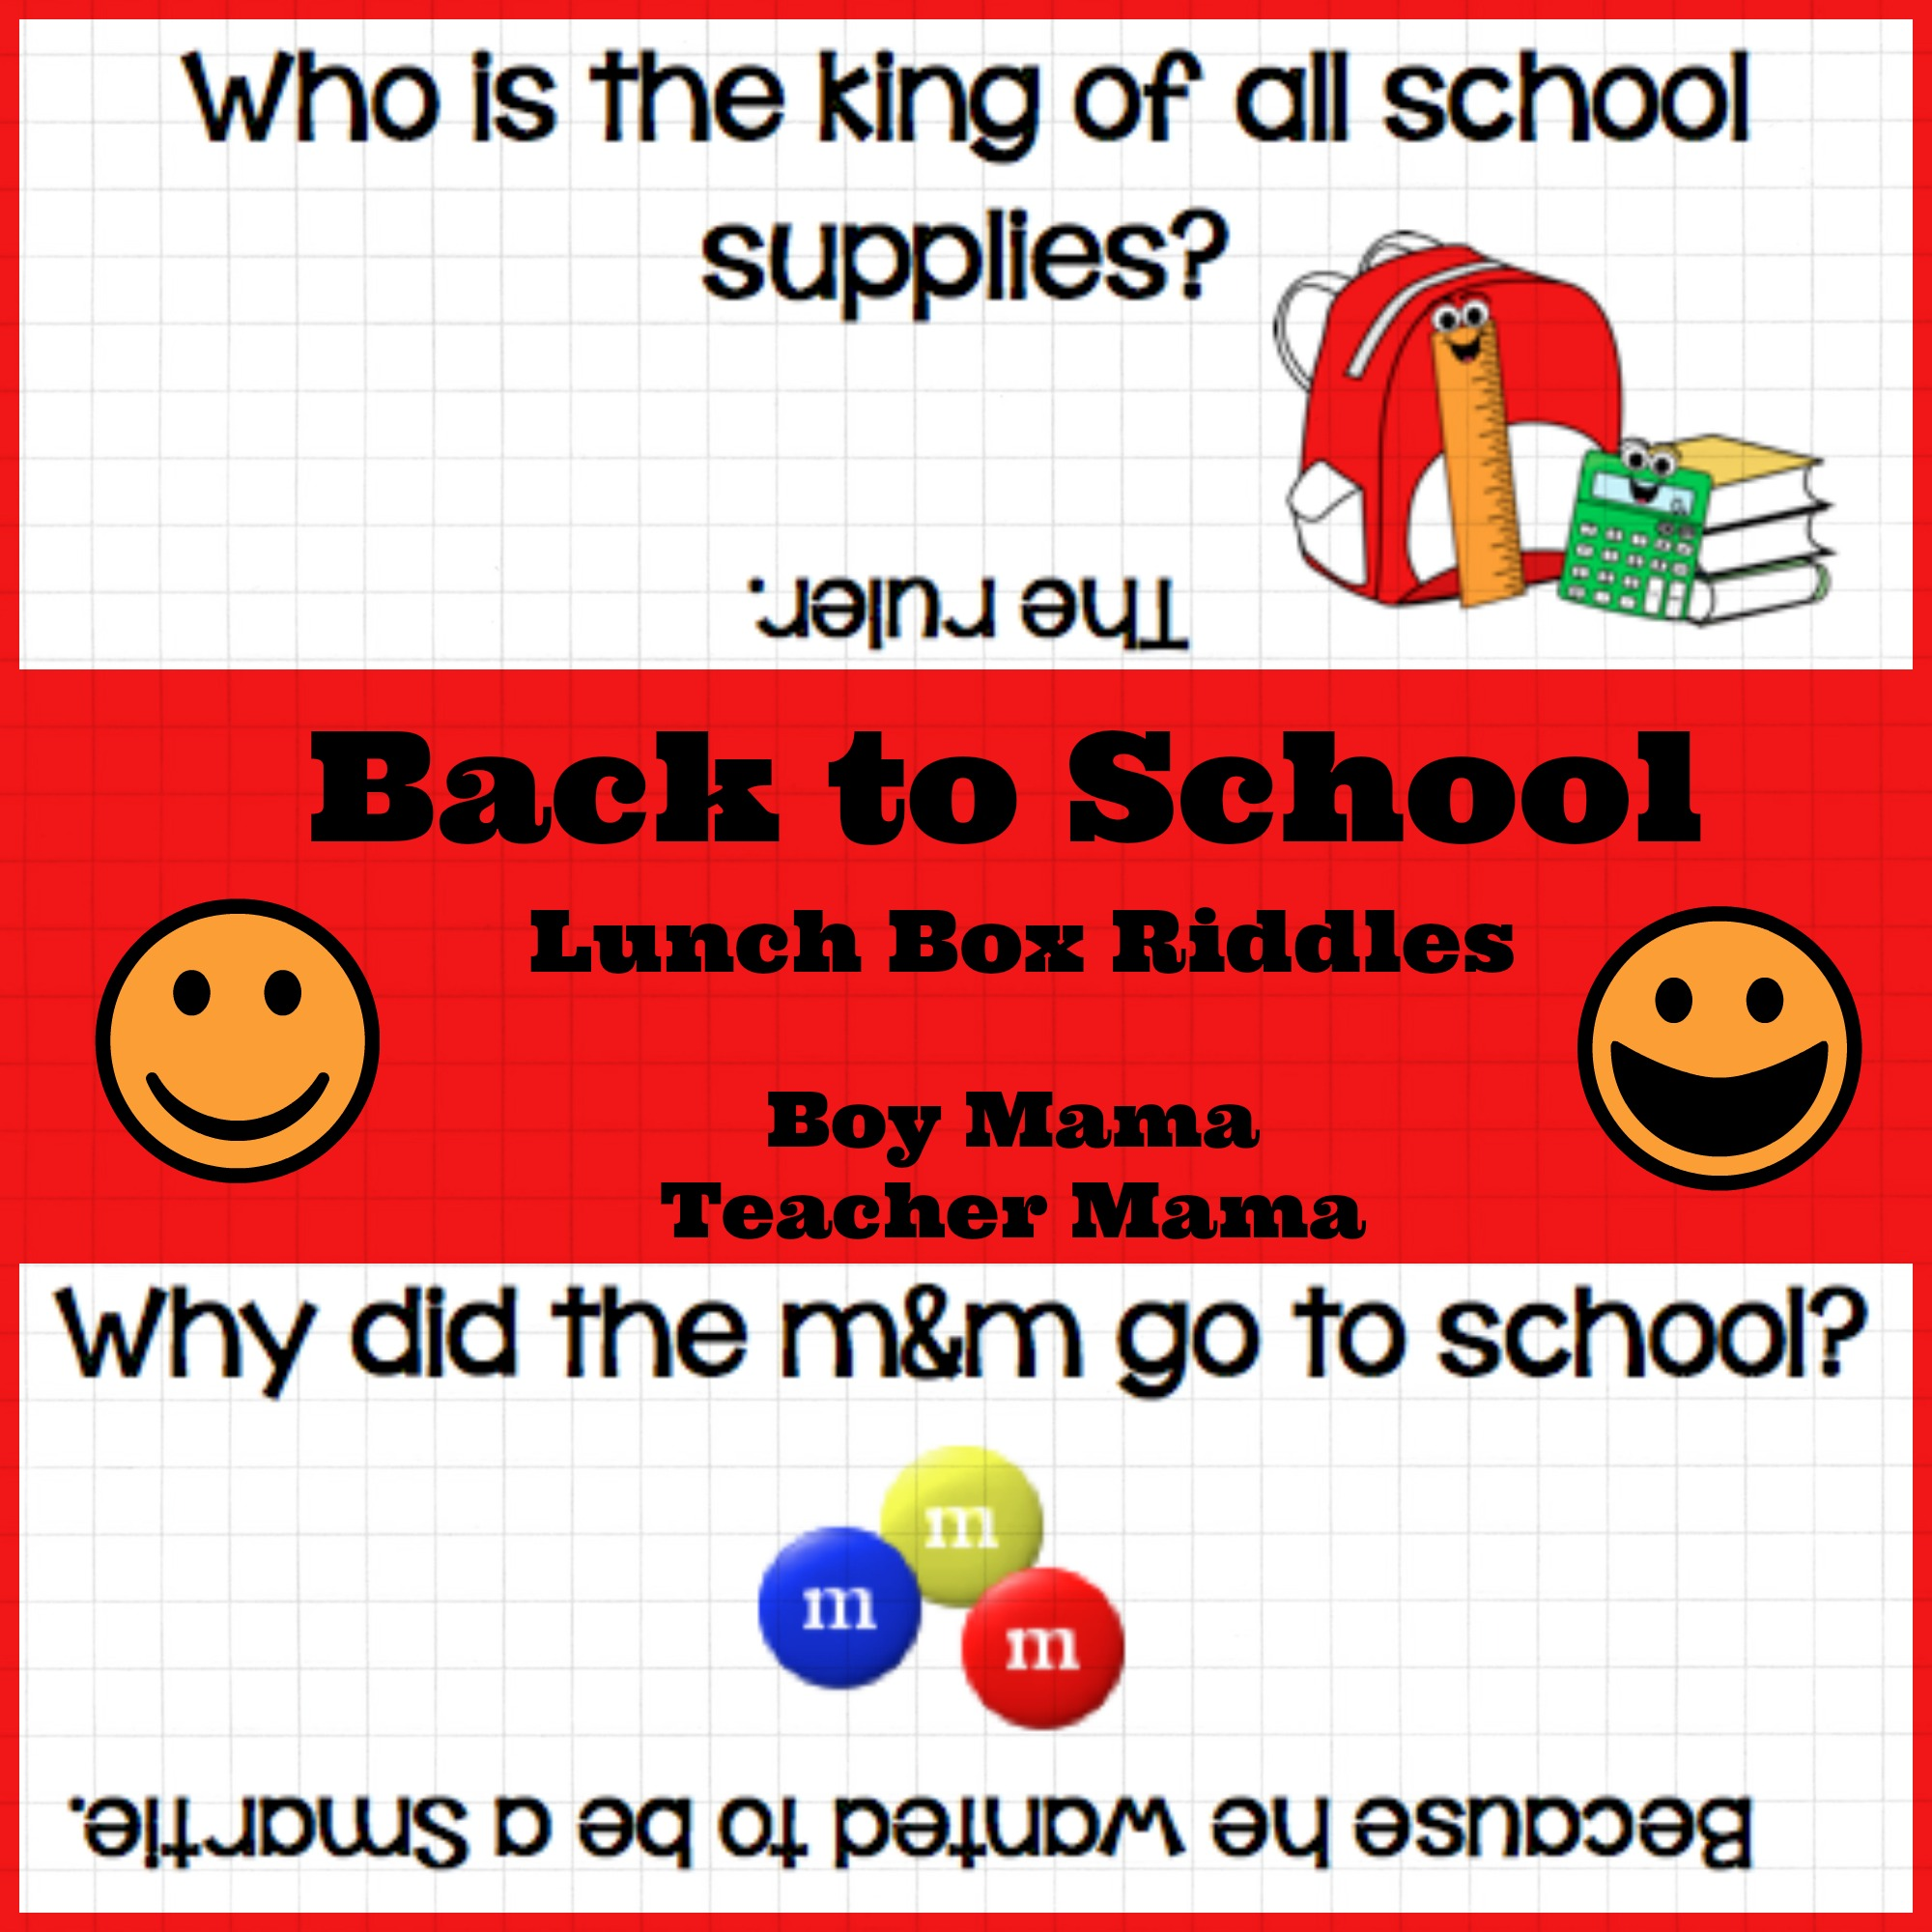 image relating to Riddles for Kids Printable named Boy Mama: Again in direction of College or university Lunch Box Riddles Printable - Boy